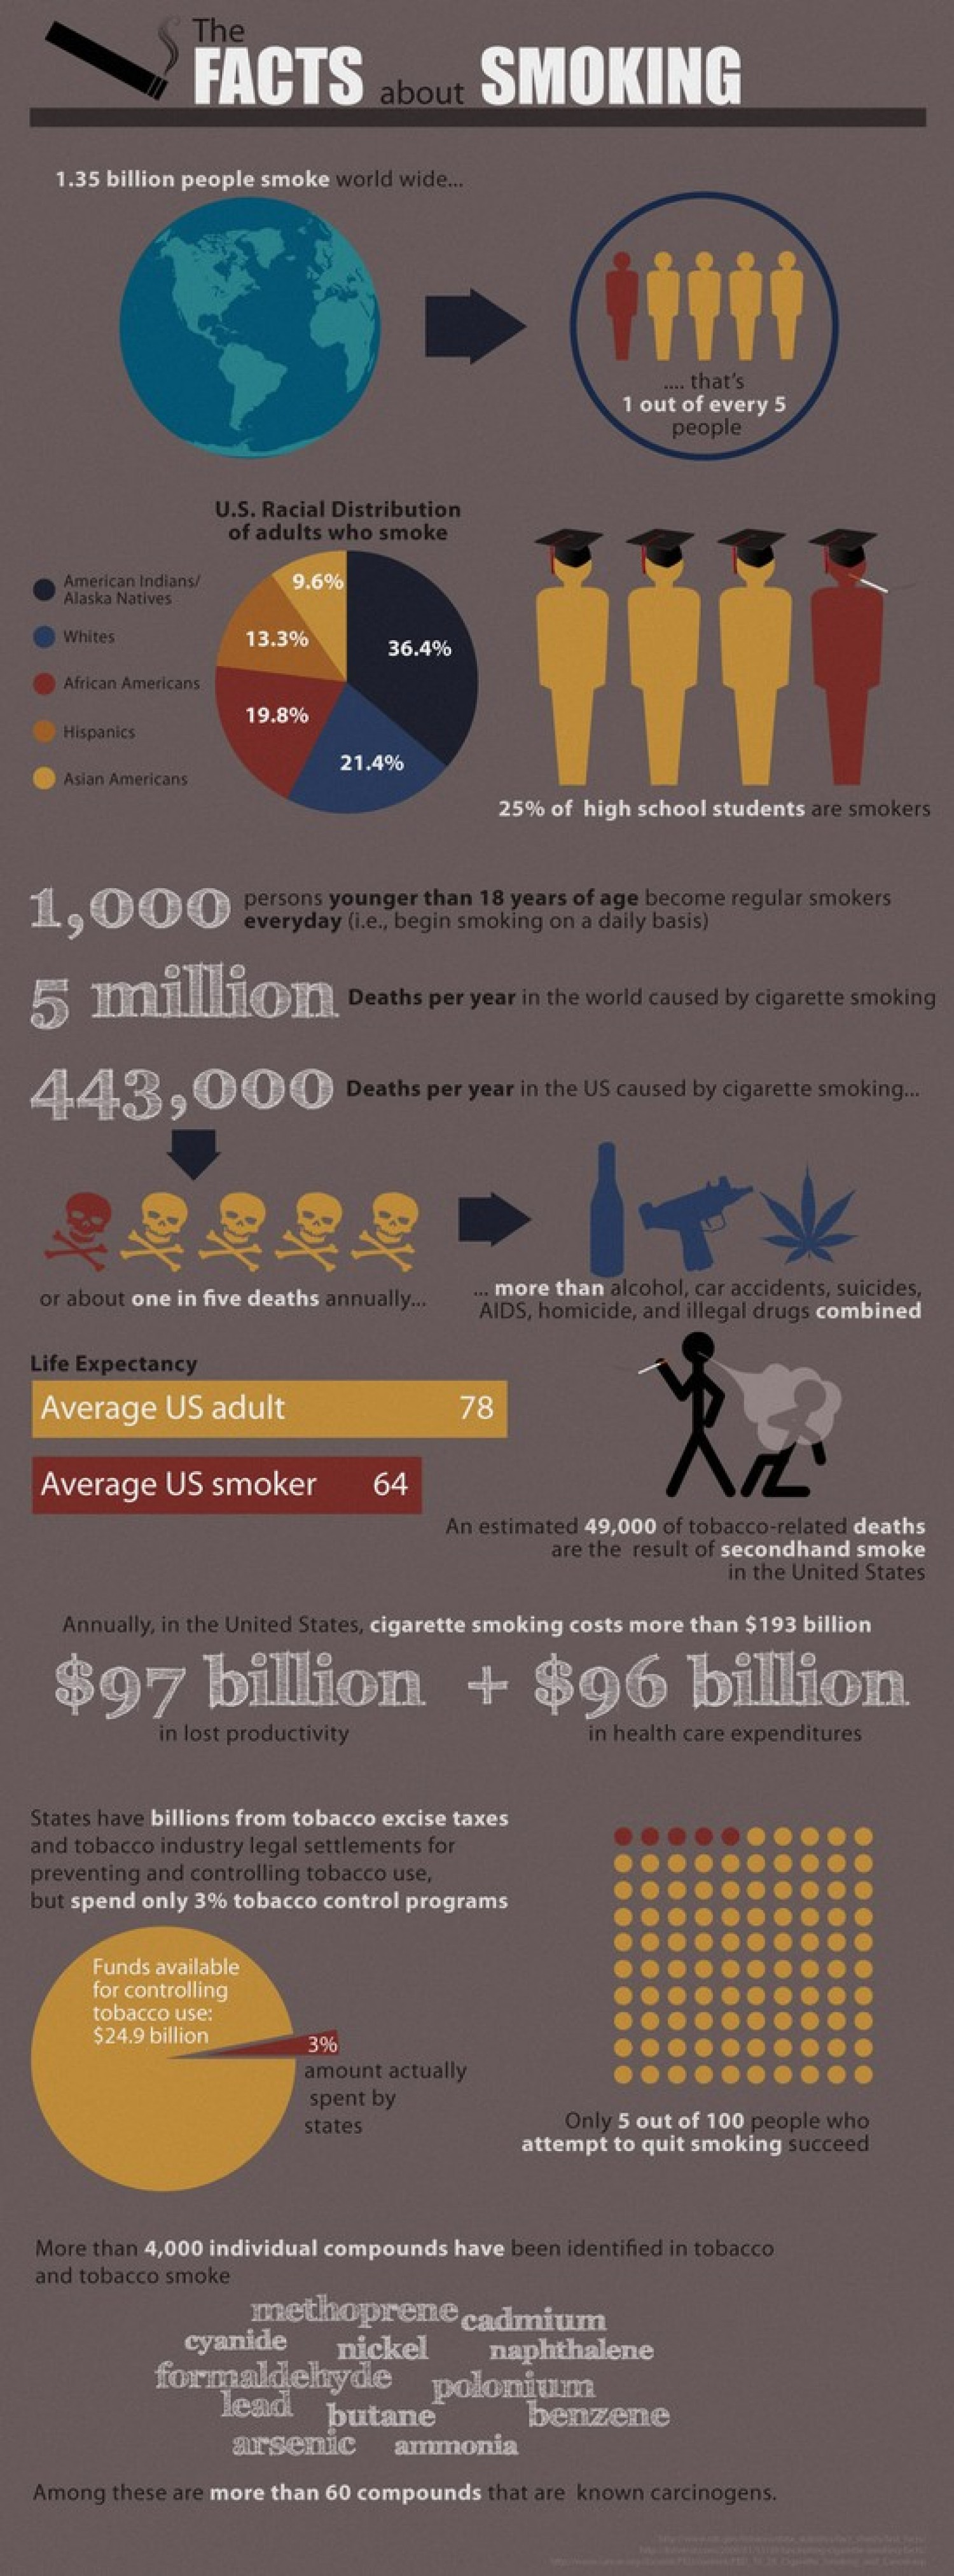 19. Deaths due to Smoking